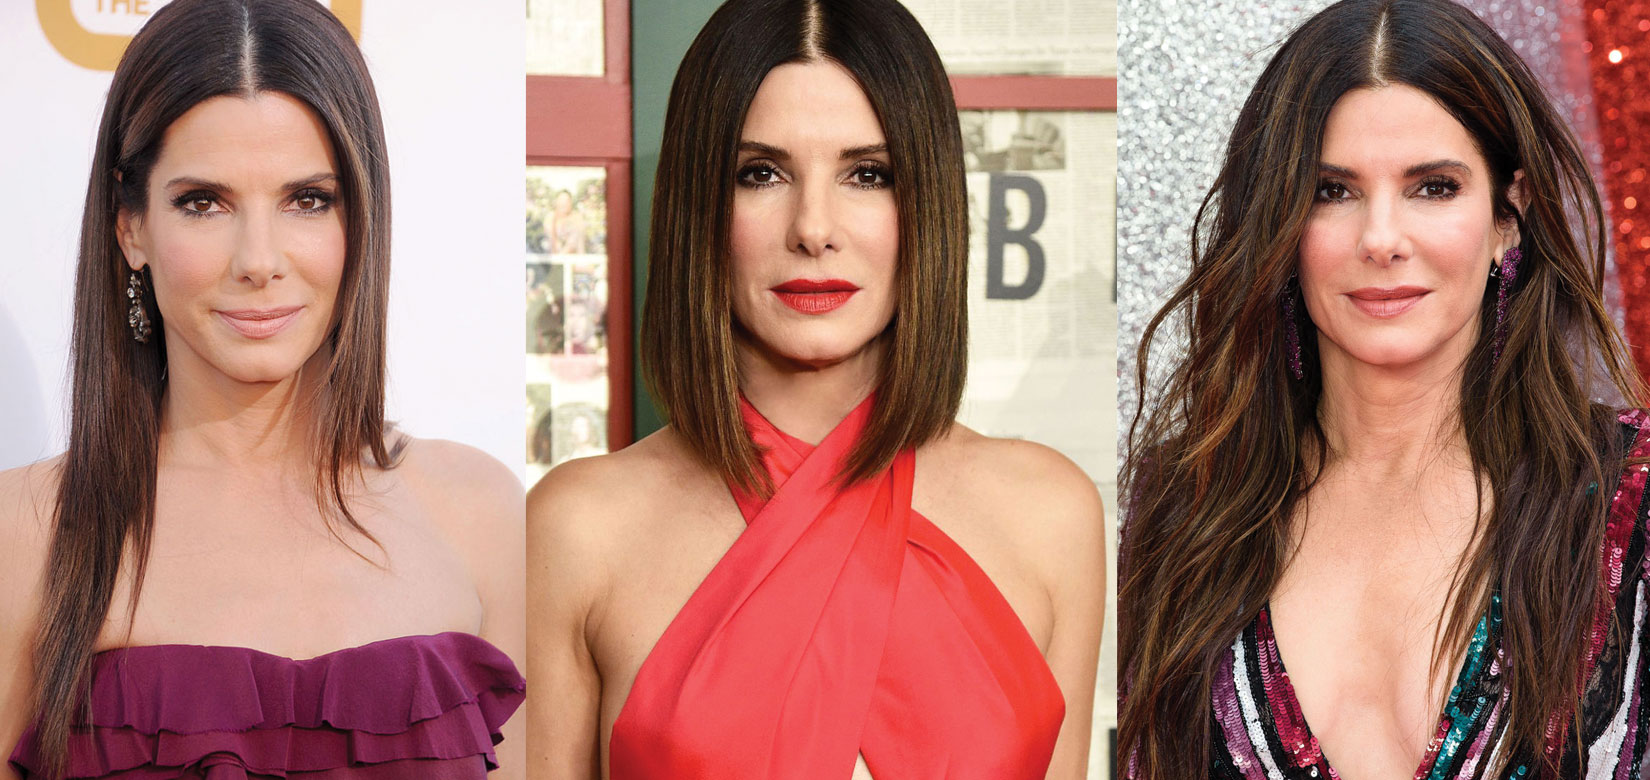 Sandra Bullock Plastic Surgery Before and After 2021